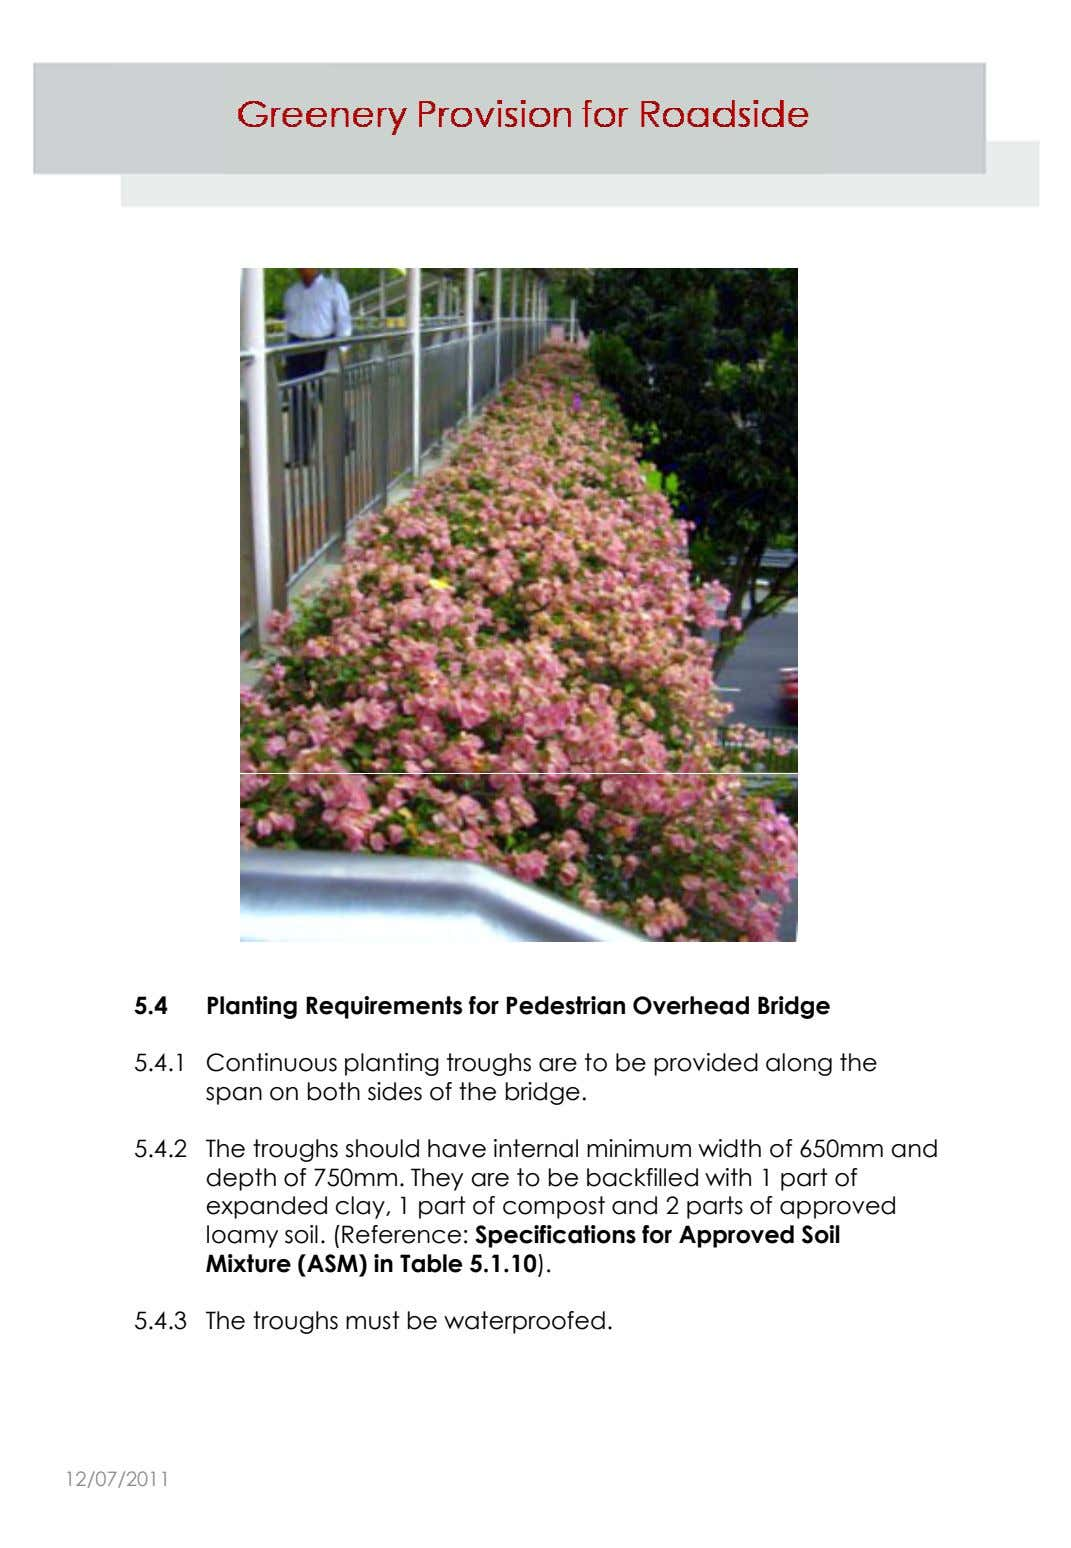 5.4 Planting Requirements for Pedestrian Overhead Bridge 5.4.1 Continuous planting troughs are to be provided